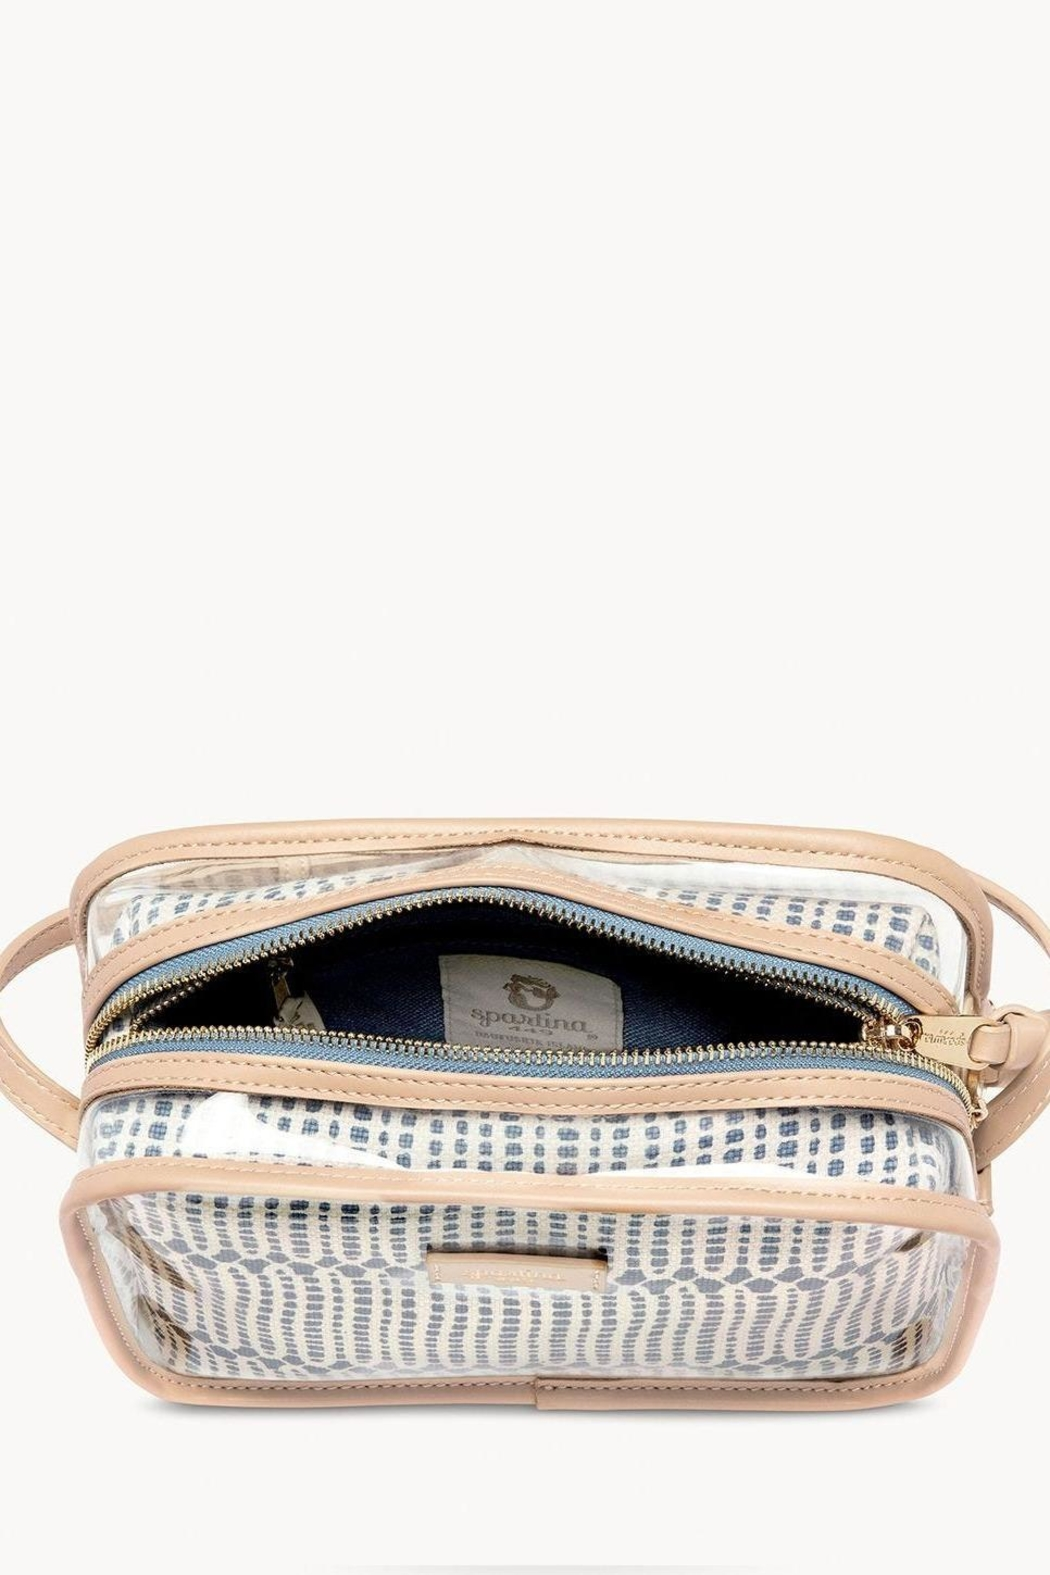 Spartina 449 Songbird Clear Crossbody - Front Full Image